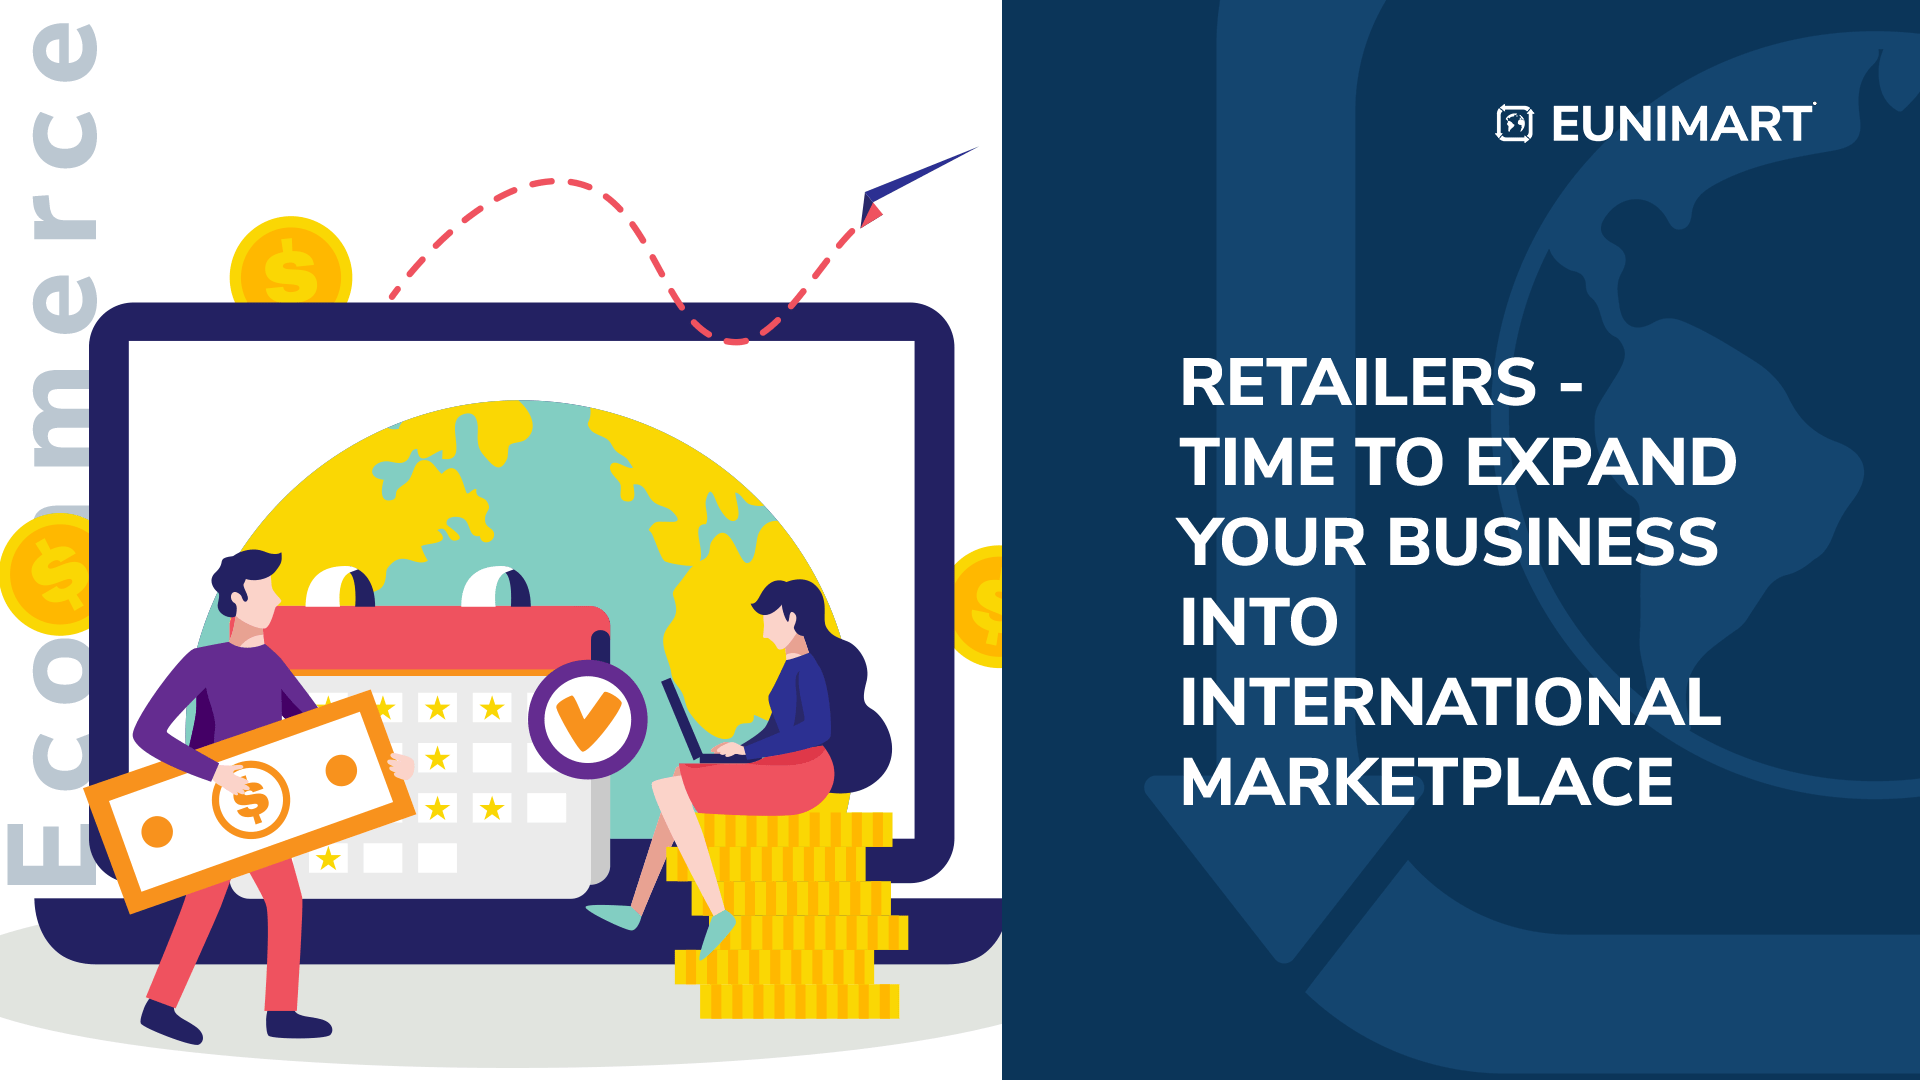 Retailers – Time to expand your business into International Marketplace